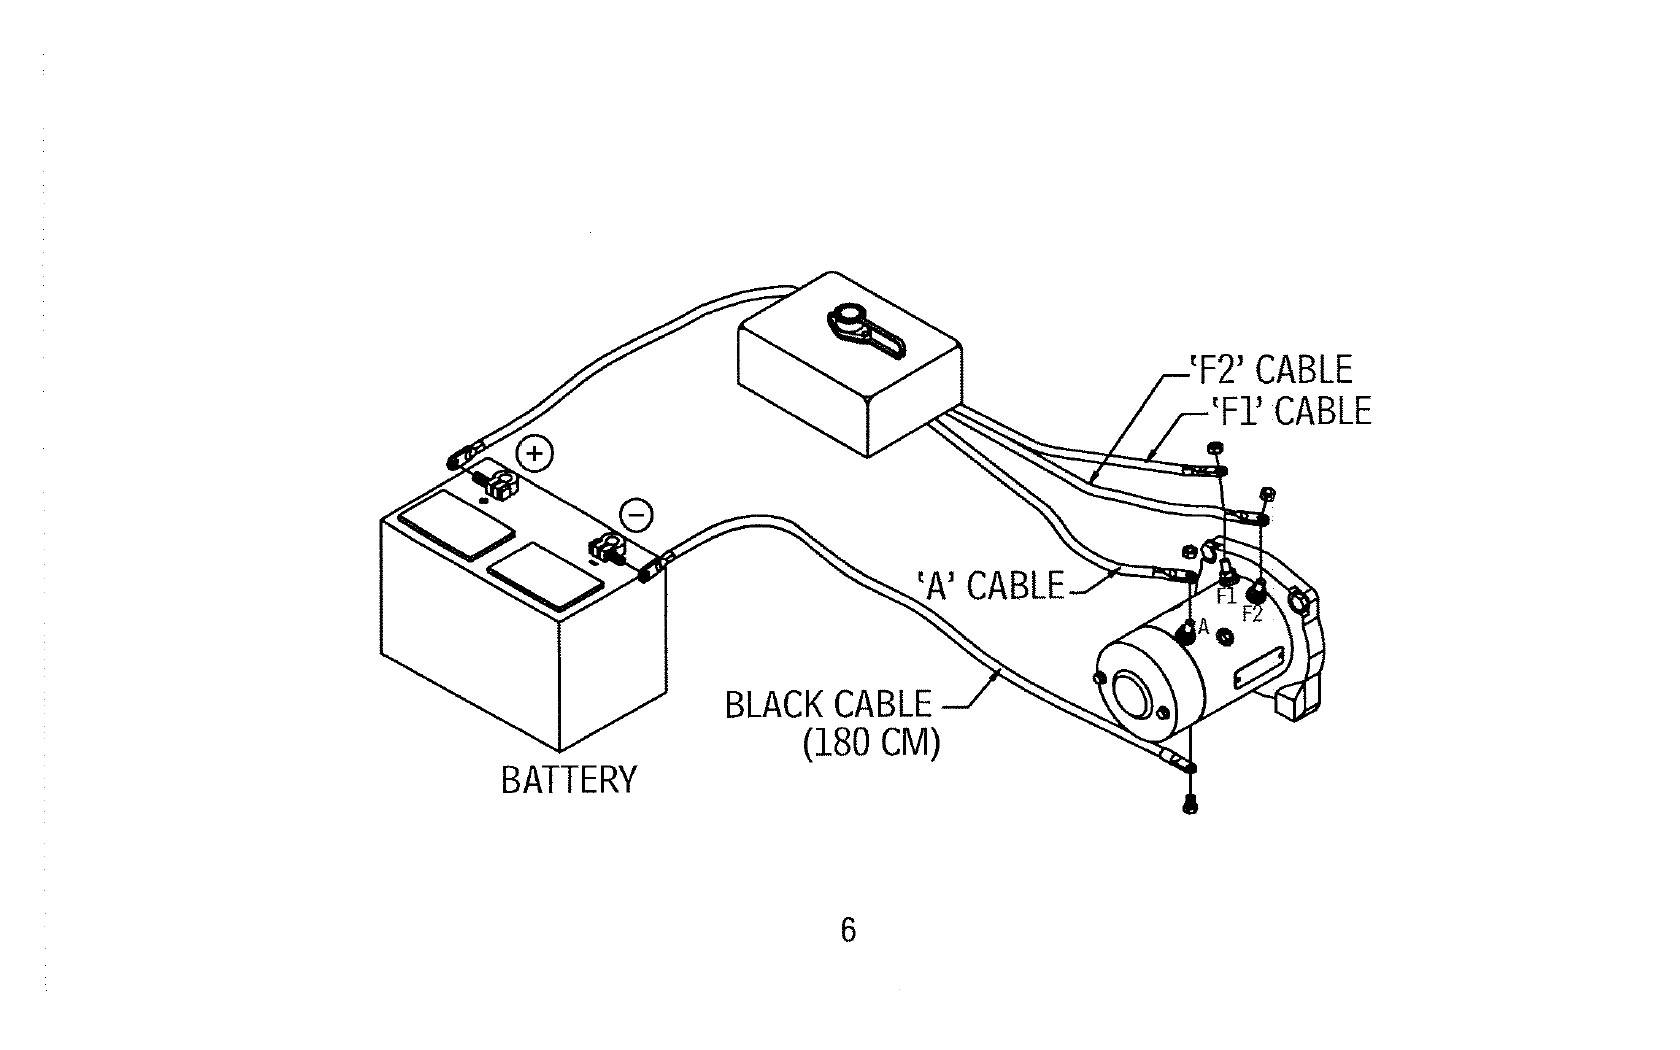 warn_cables moving warn solenoid to engine bay (fjc) yotatech forums warn a2000 winch wiring diagram at bayanpartner.co